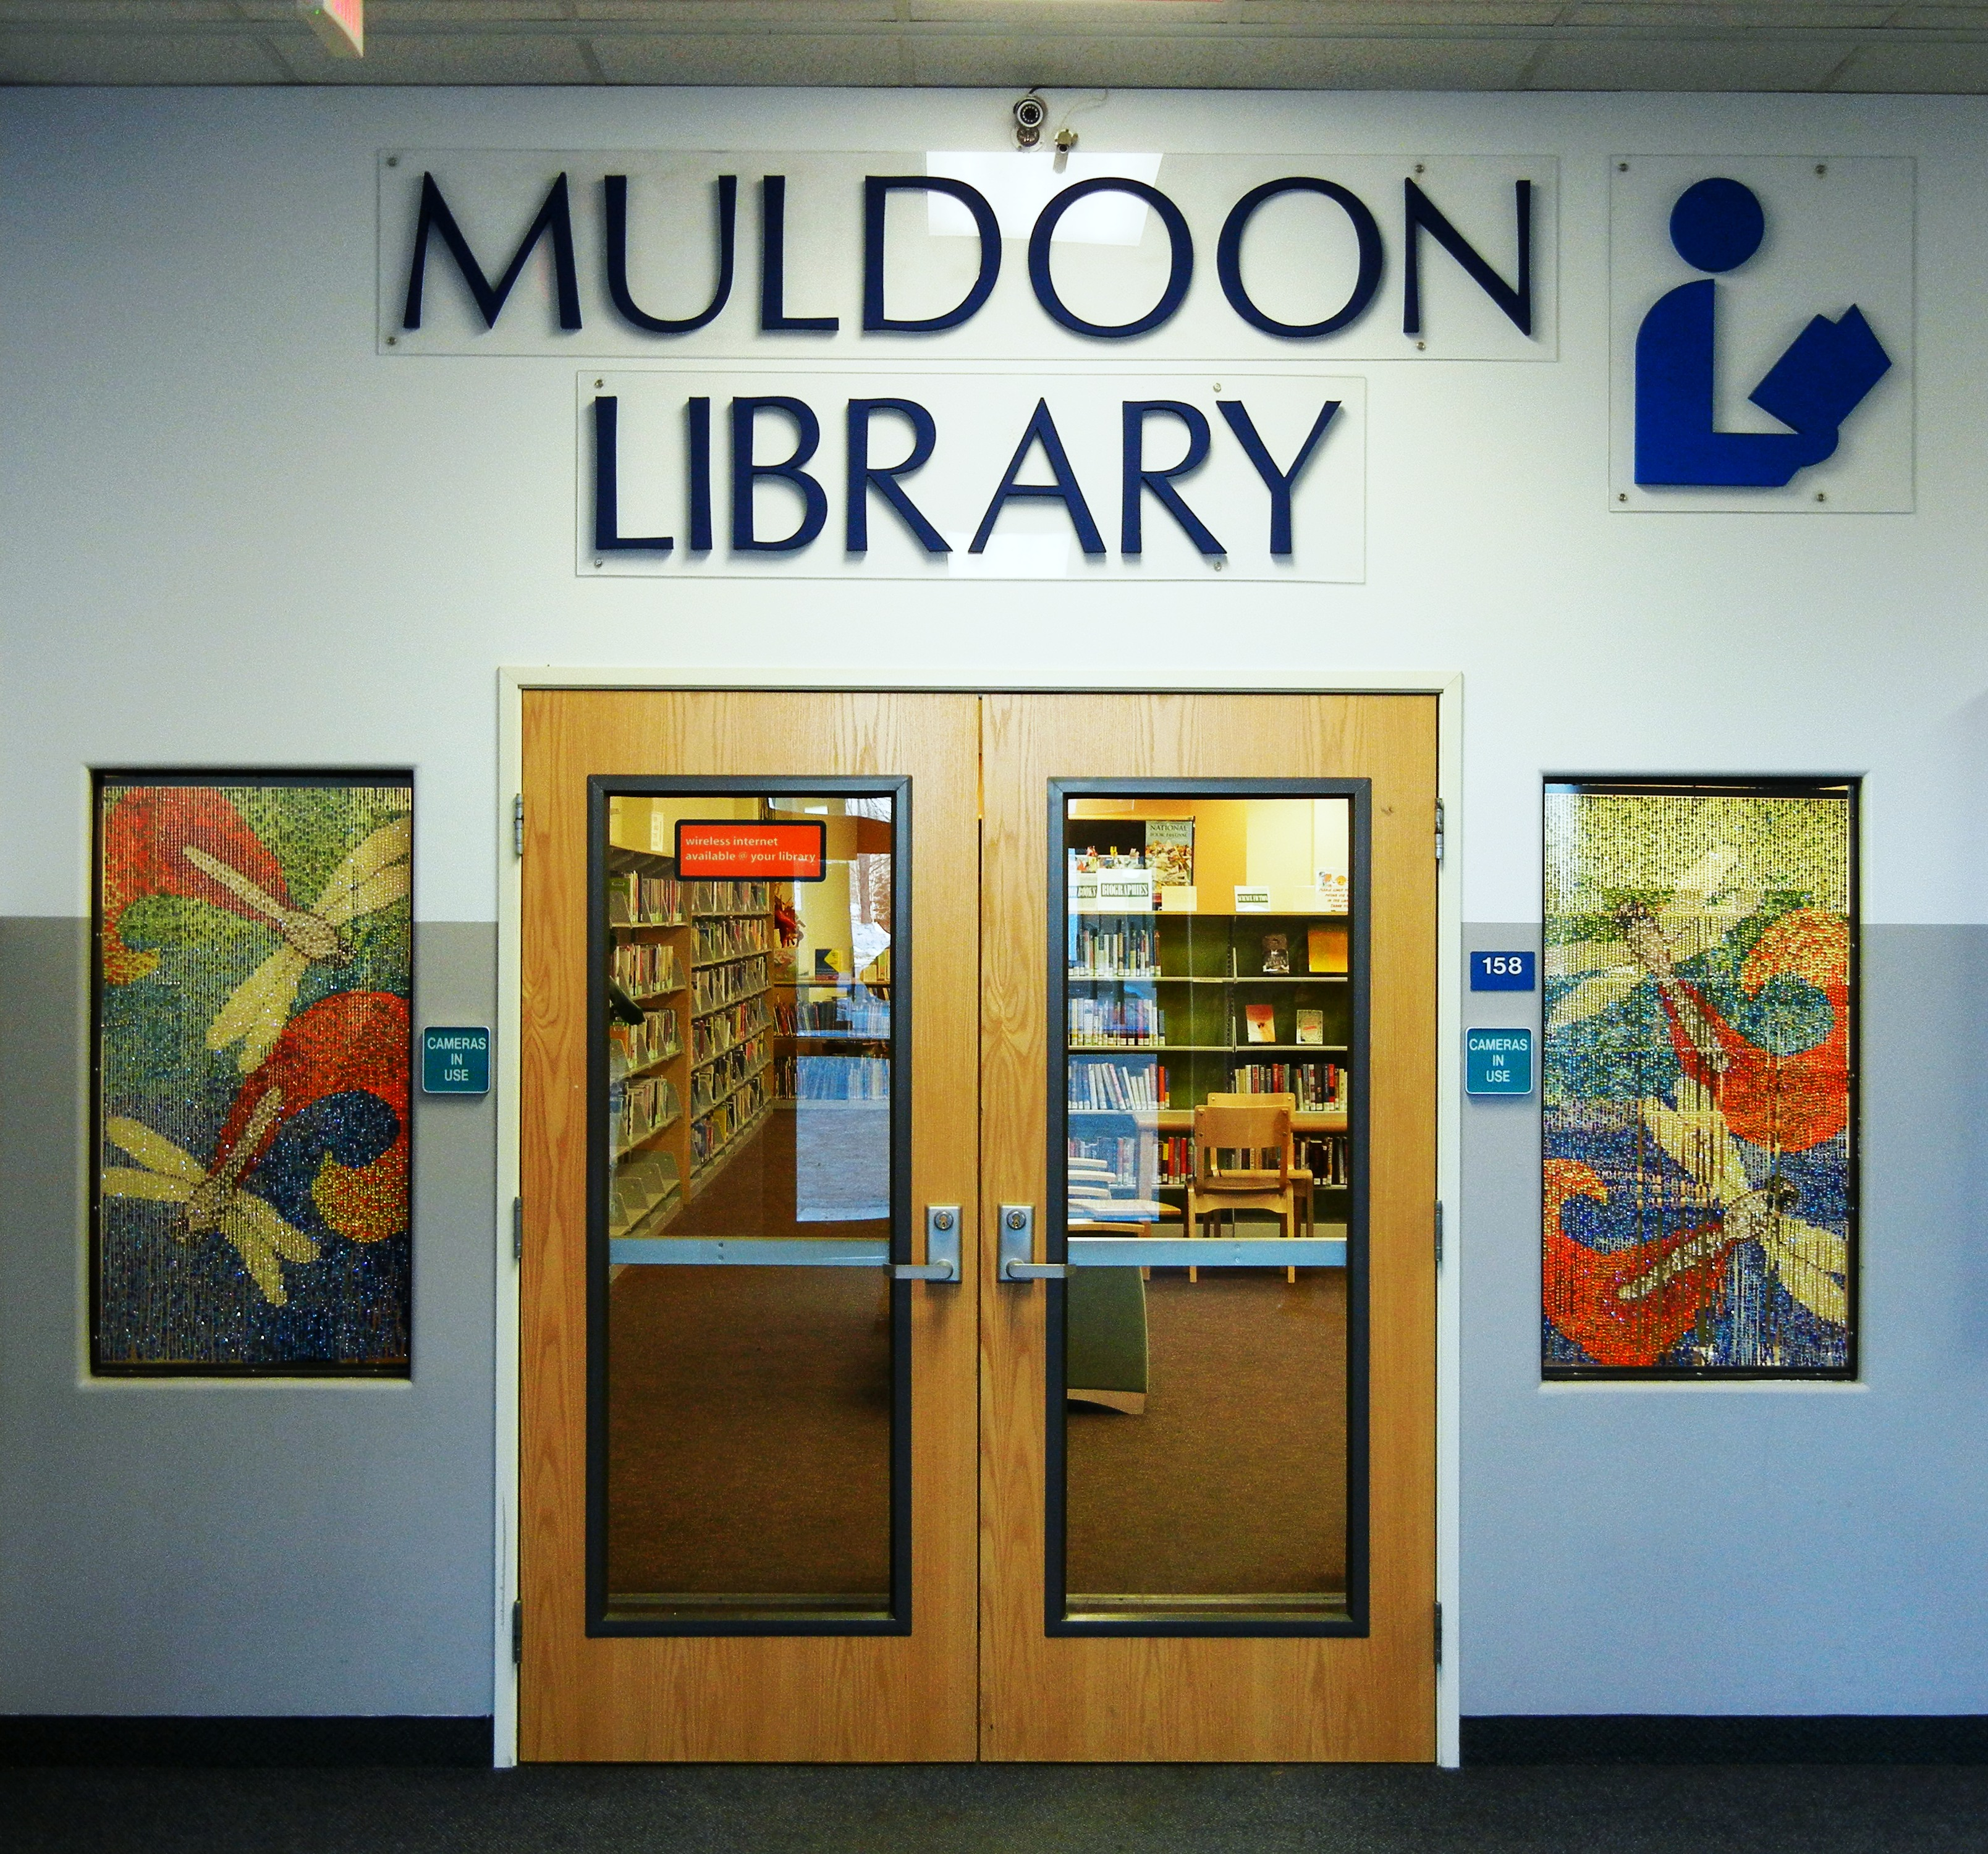 a photo of the library's front doors with Muldoon Library written above